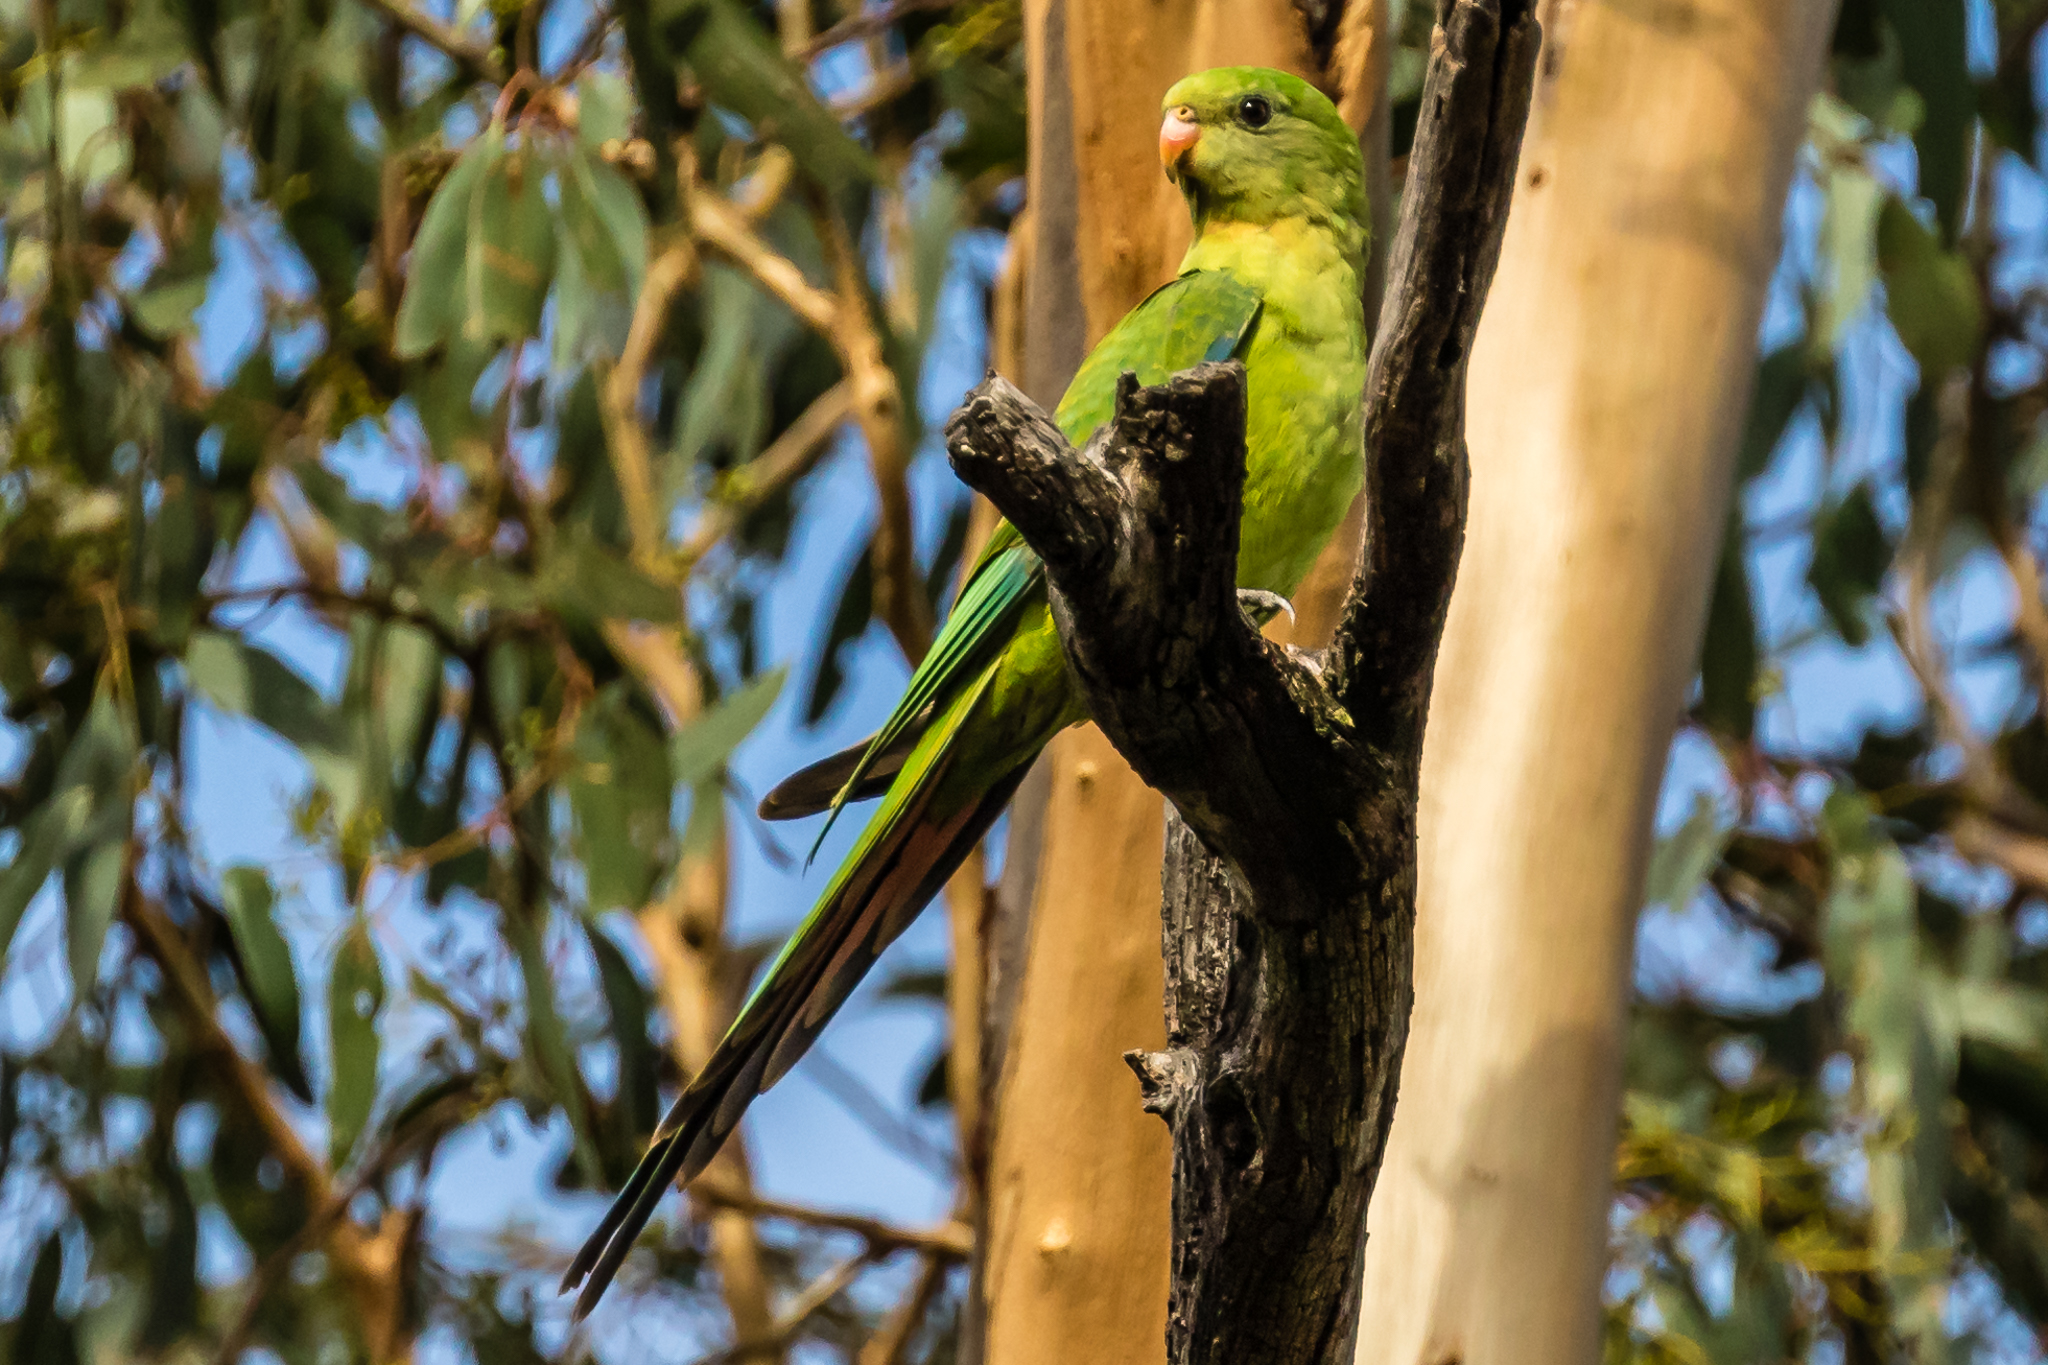 Superb Parrots are listed as vulnerable and conservation efforts are underway including provision of nest boxes. They are often seen during the spring and summer in roadside trees and open woodlands, feeding on grass seeds, fruit, nectar, flowers and berries.